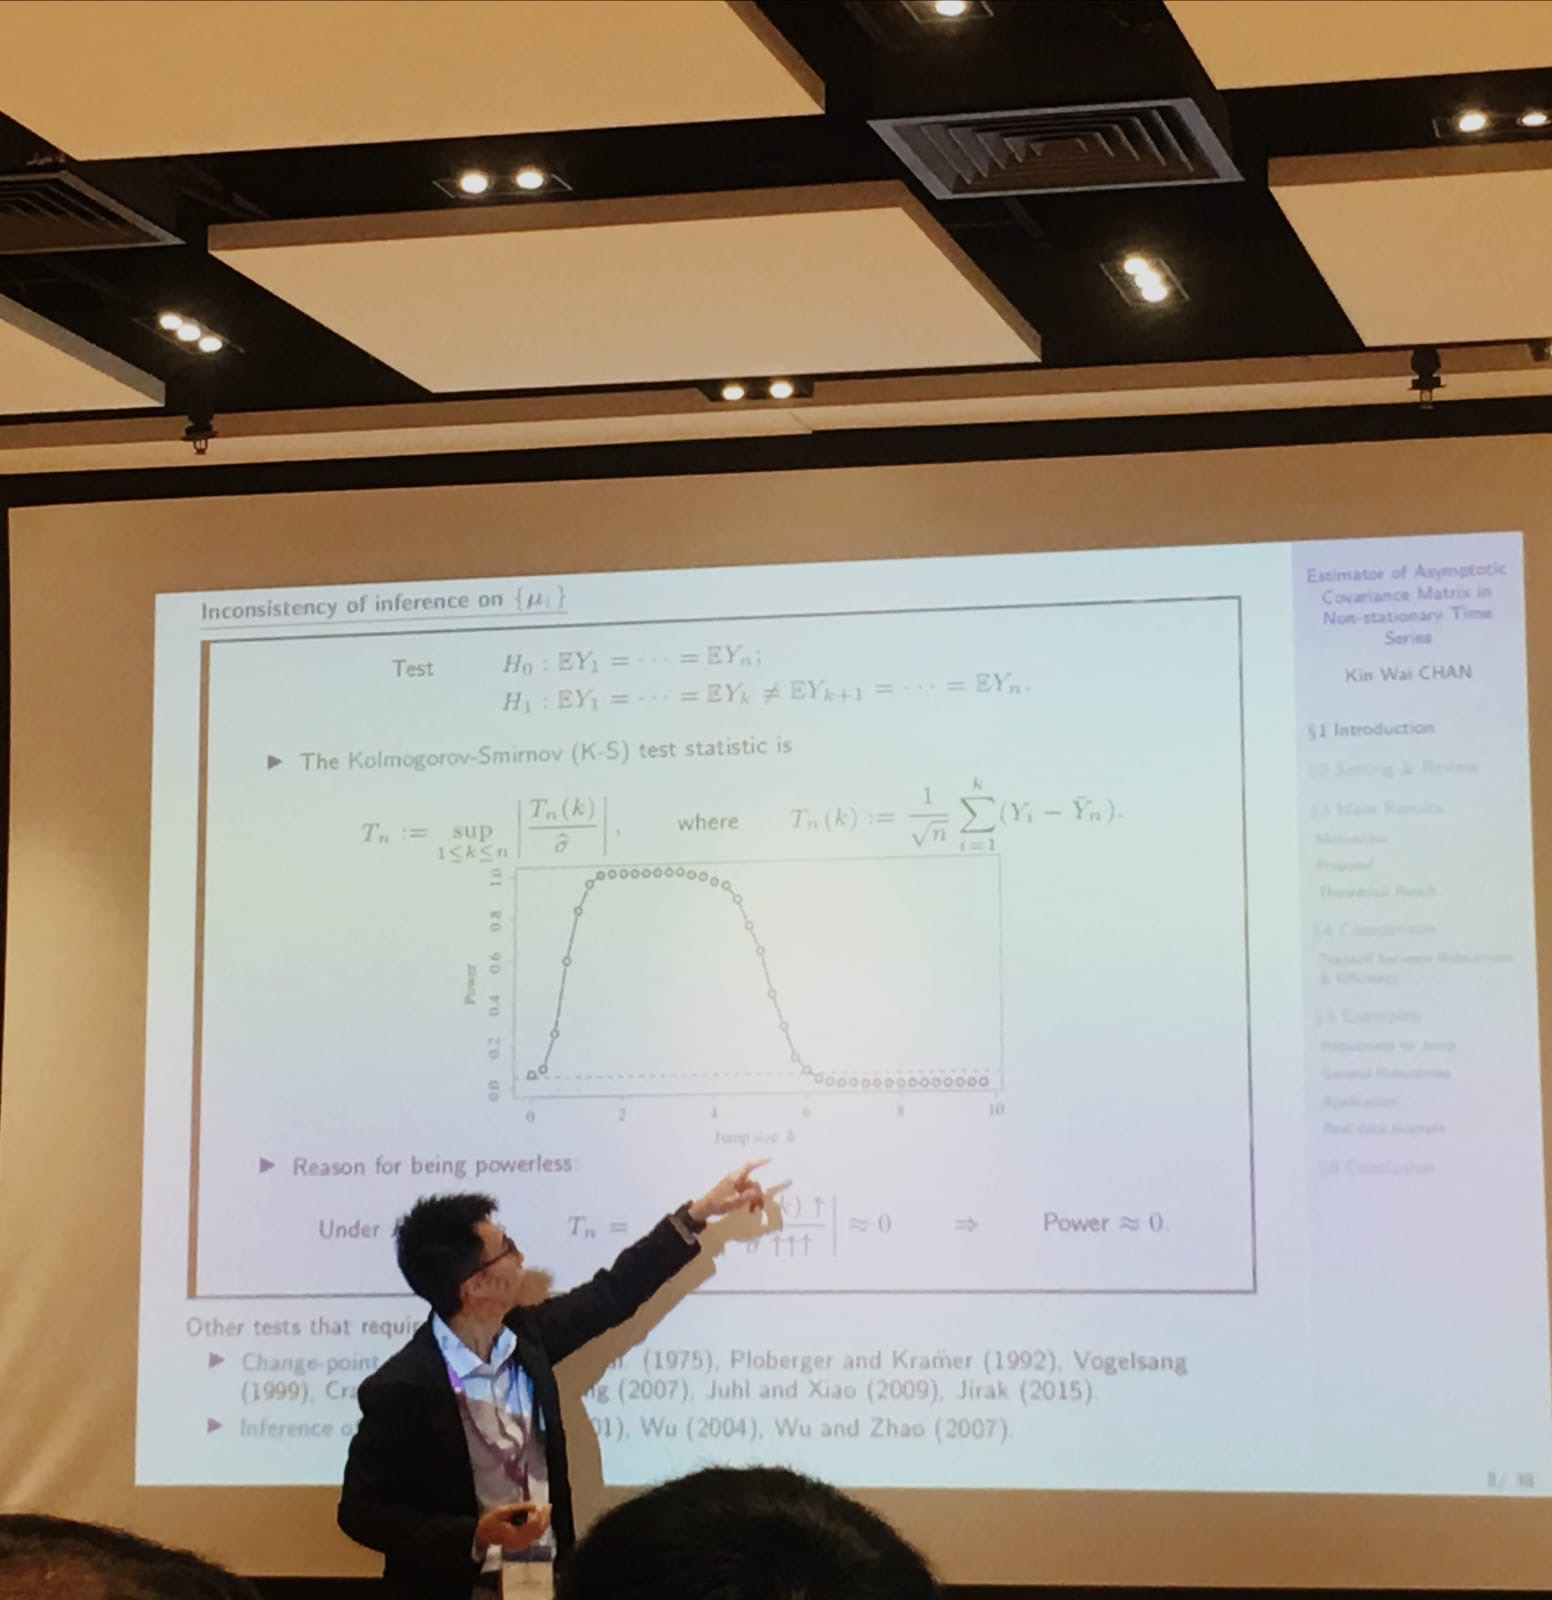 Professor Chan presents his research work at an academic conference.